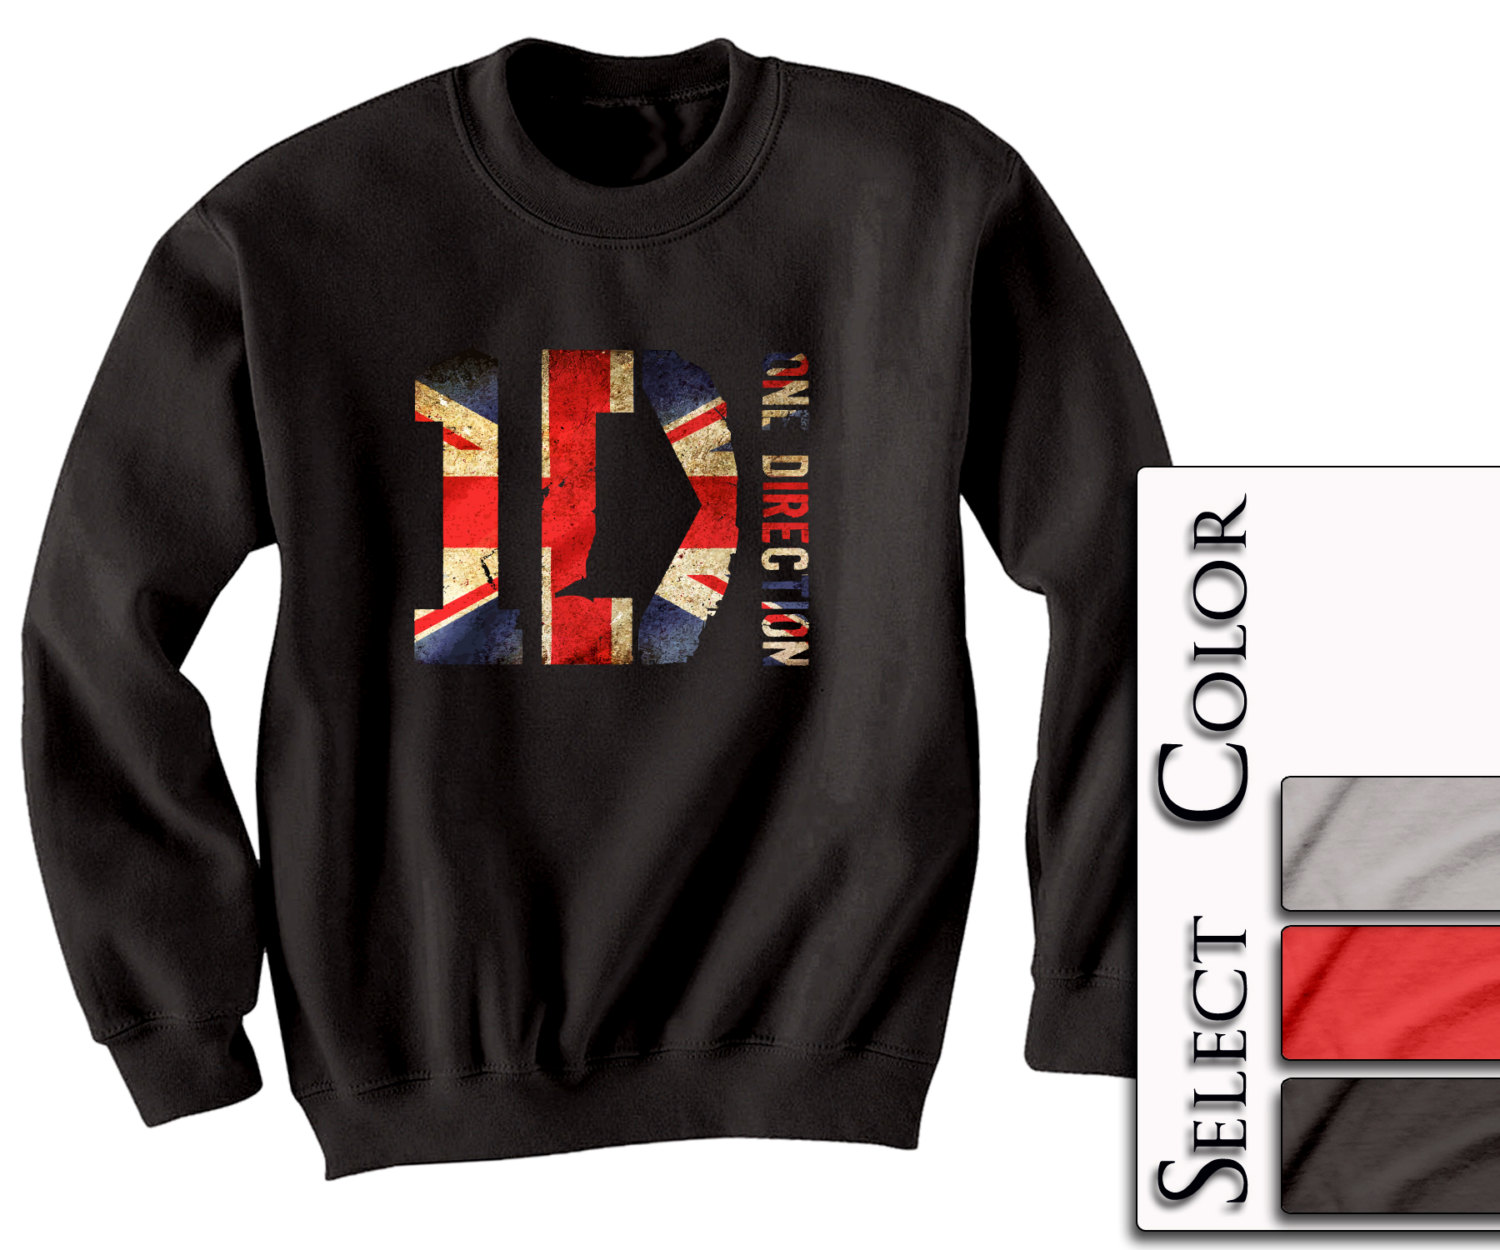 ONE DIRECTION Crewneck - British Print - Tour Niall Liam Zayn Louis Harry 1D tee